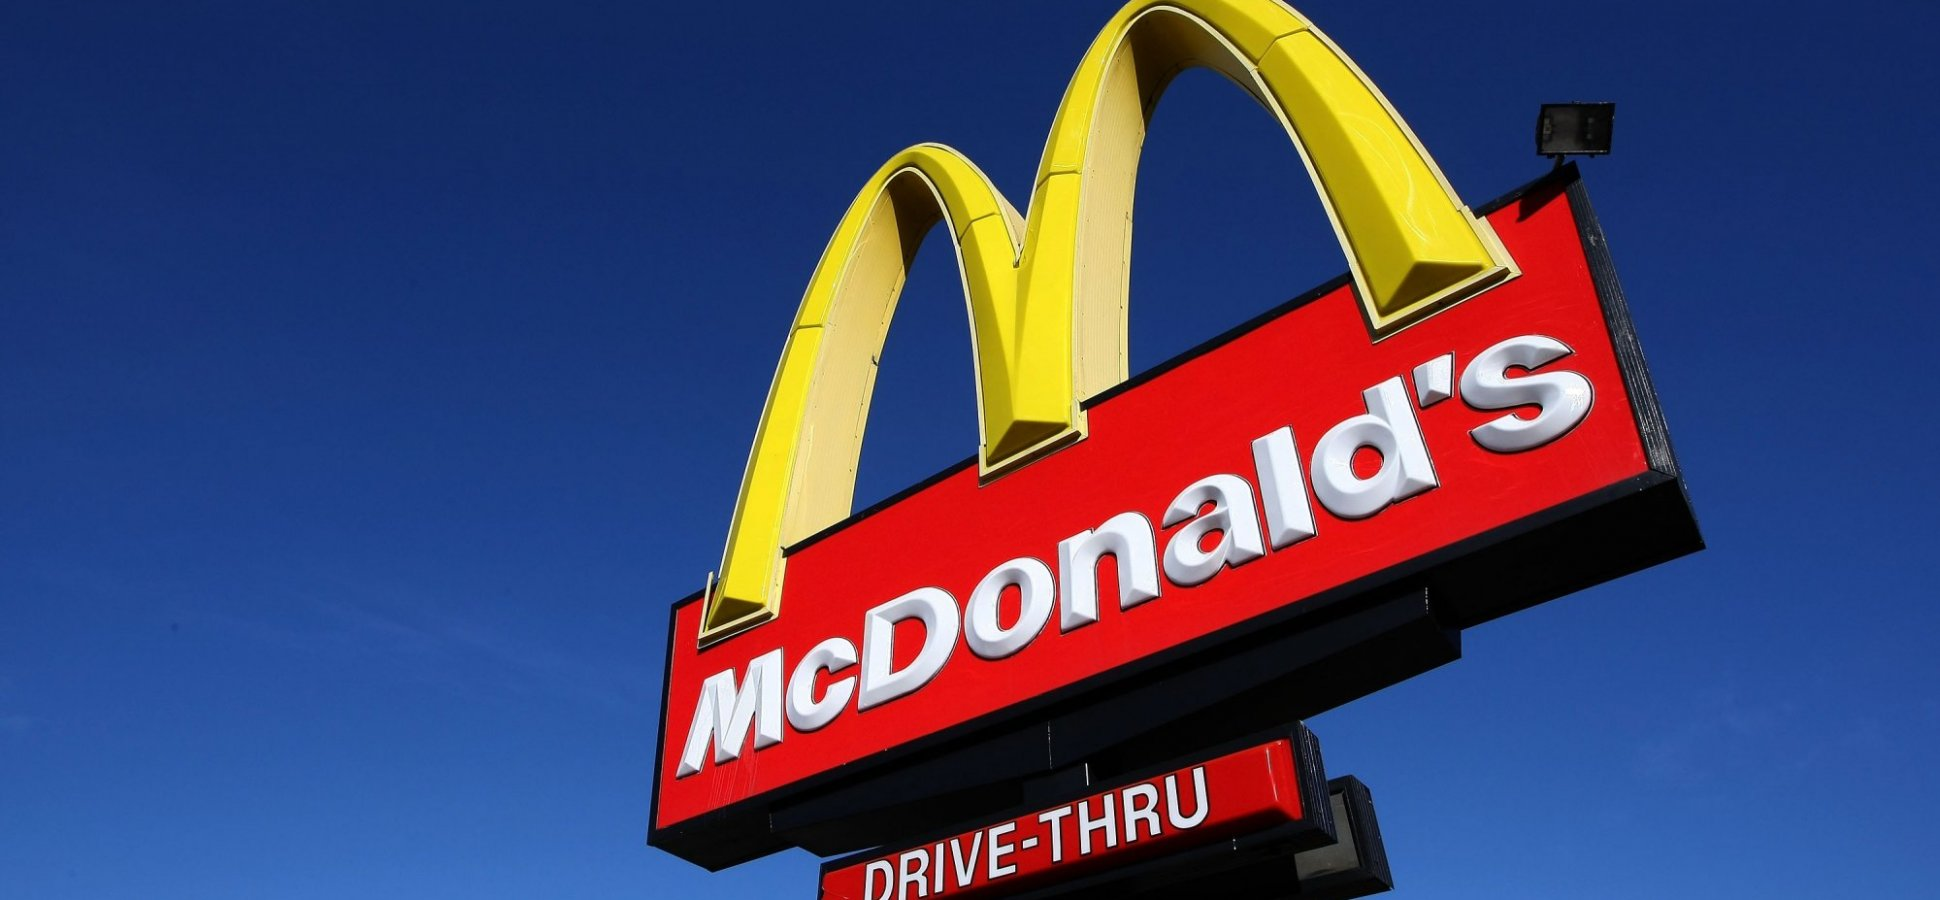 McDonald's Just Made the 1 Big Announcement Its Most Devoted Fans Have Been Waiting For